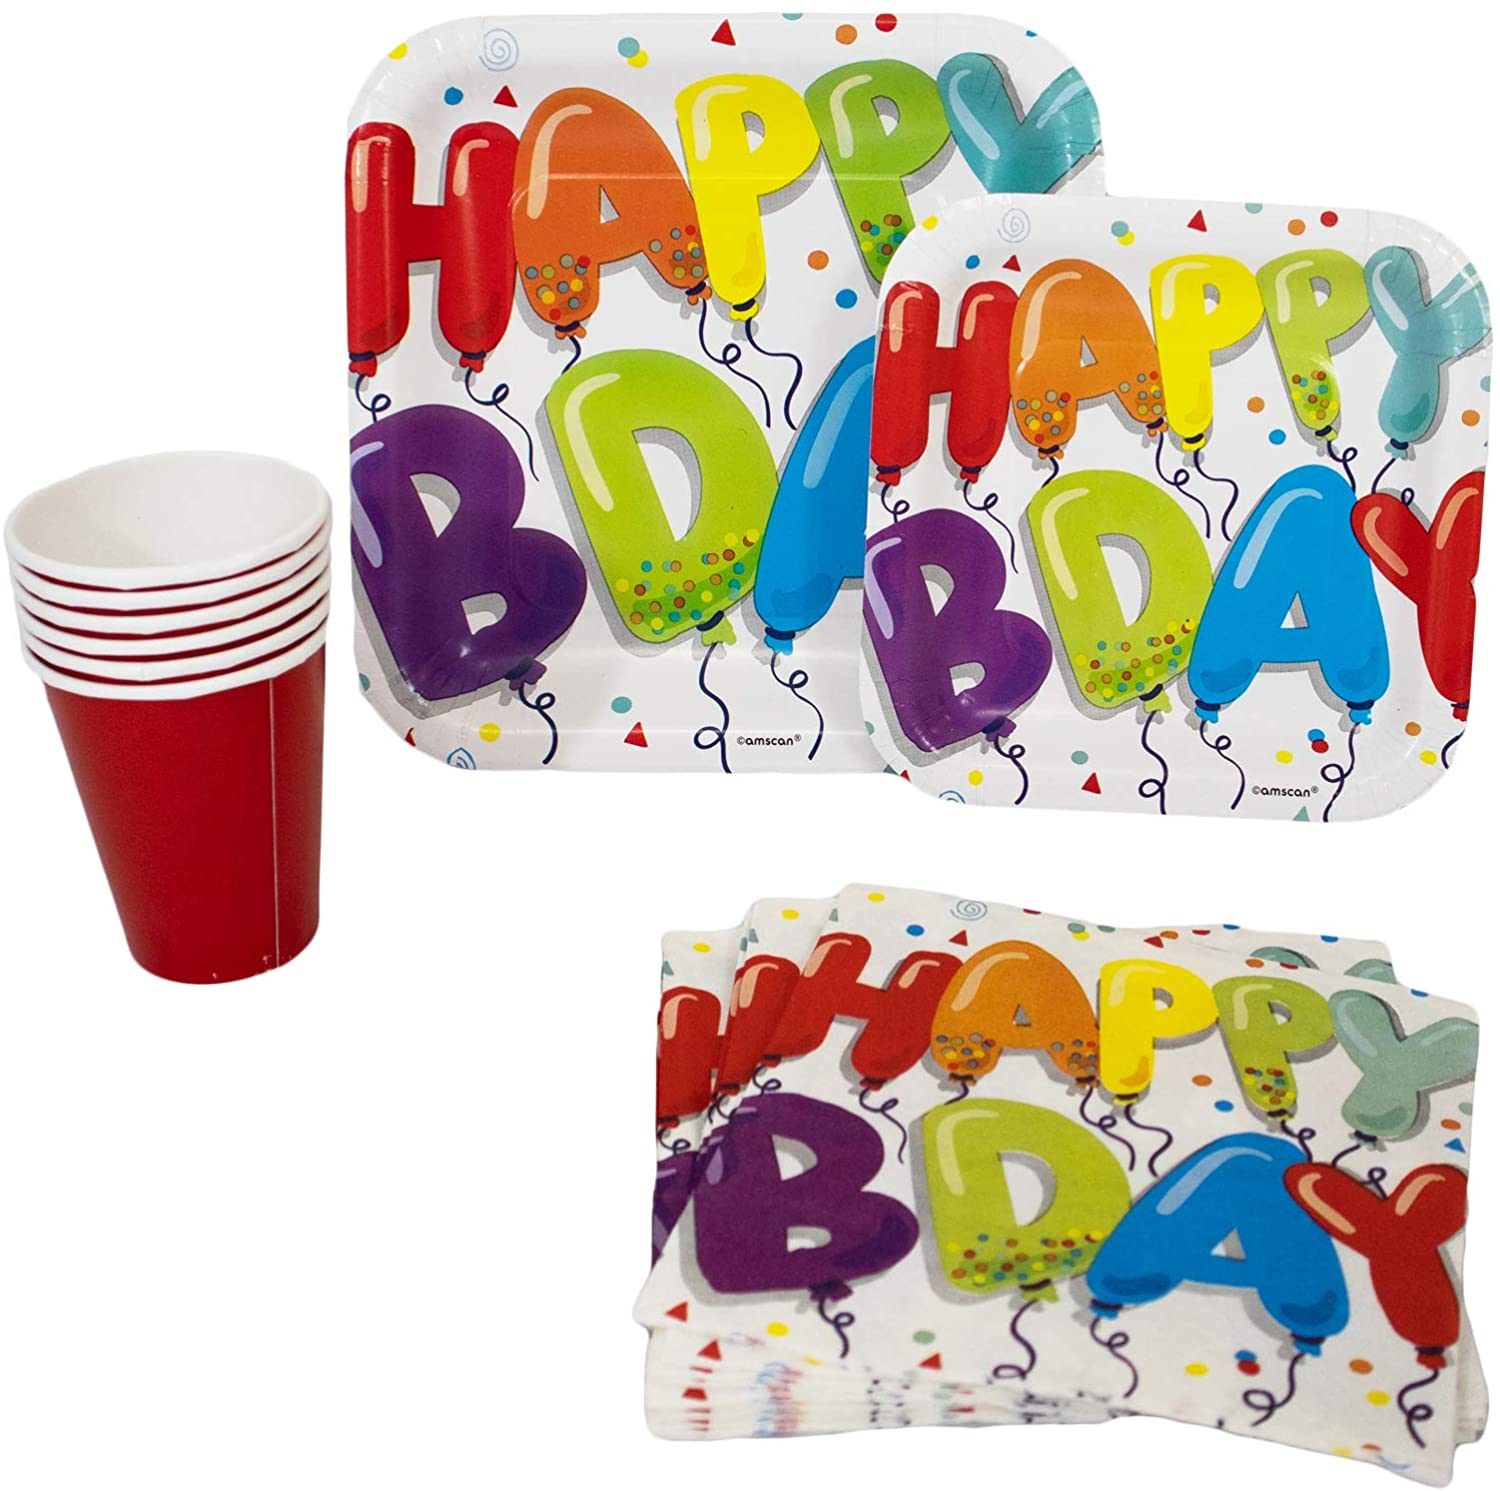 Colorful Happy Birthday Pack! Disposable Paper Plates, Napkins and Cups Set for 18